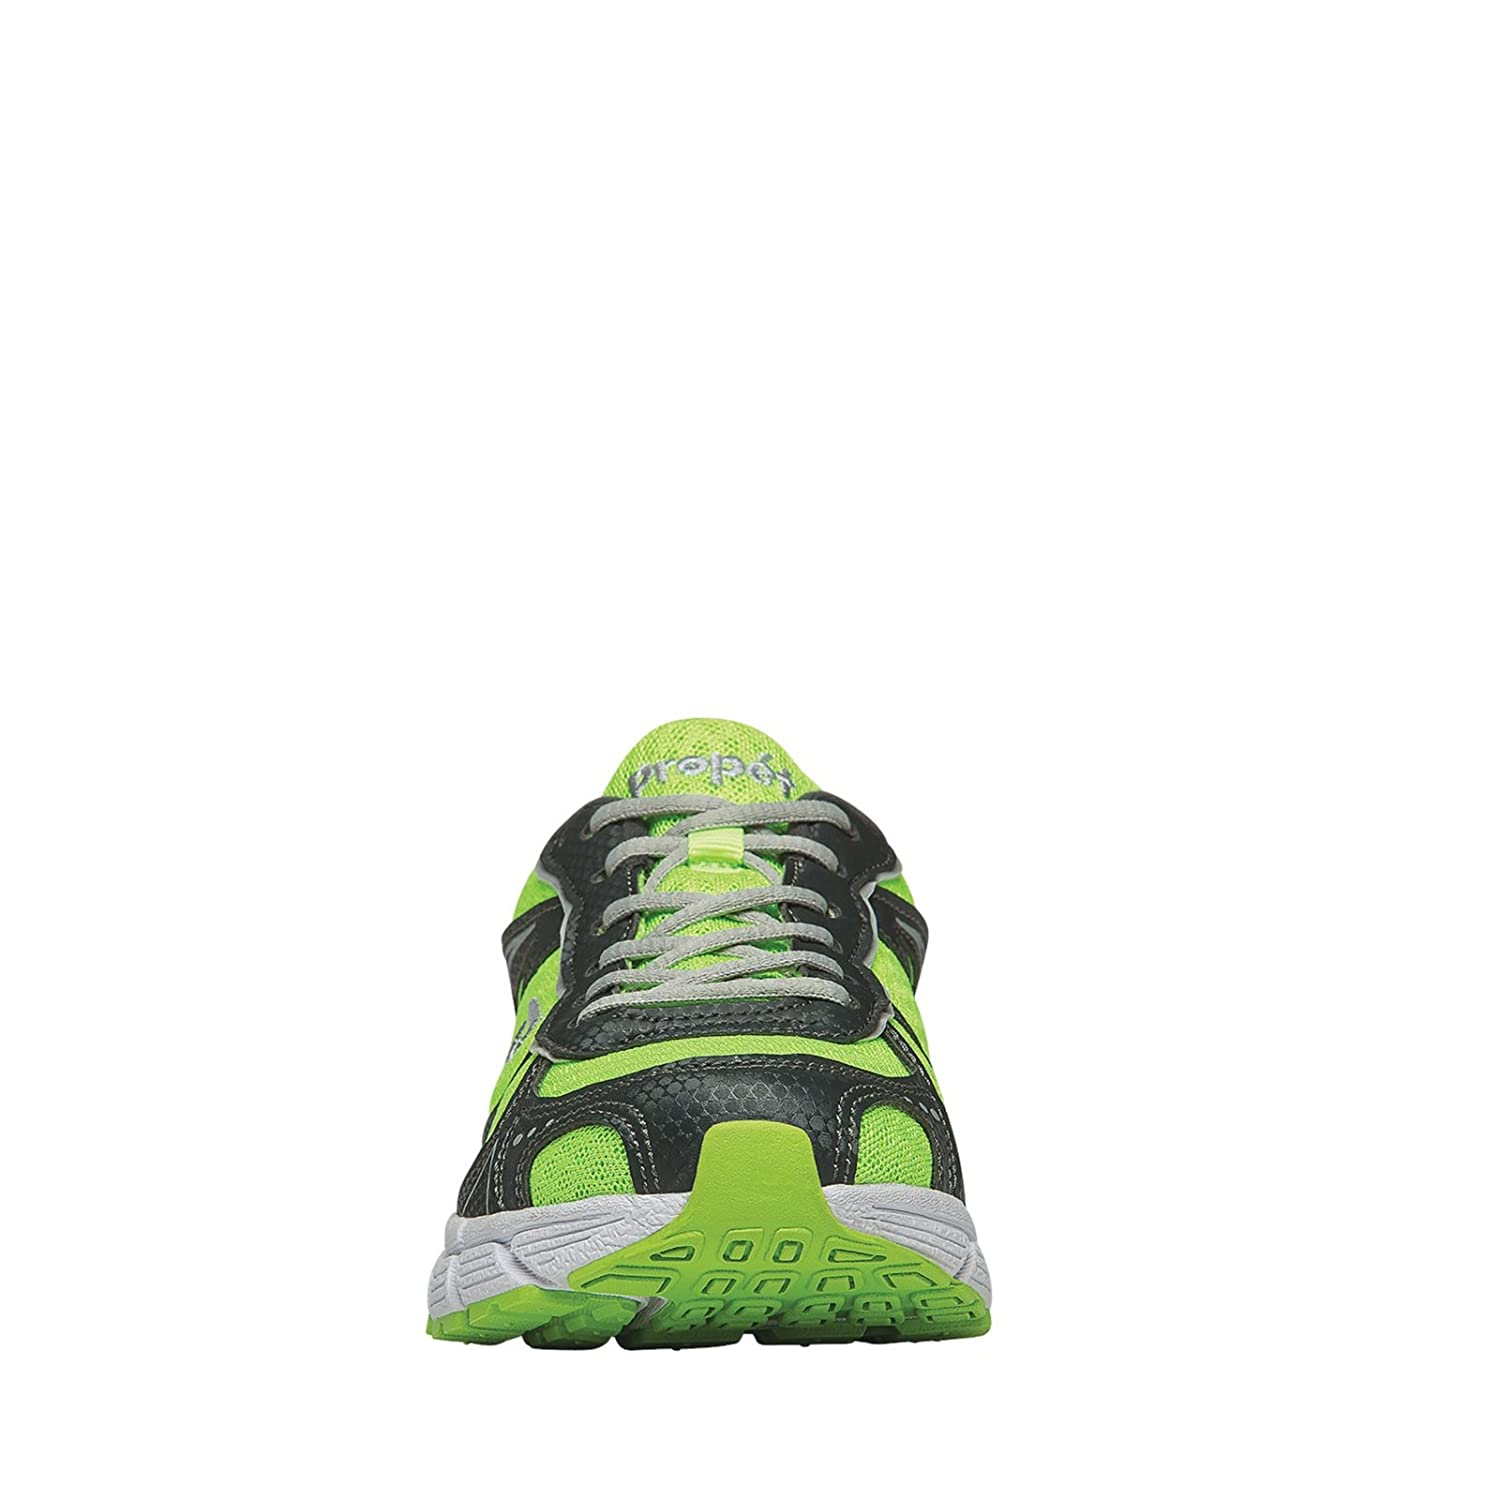 Propet Women's B00T9Y470C XV550 Walking Shoe B00T9Y470C Women's 8 W US|Lime/Grey 10257a